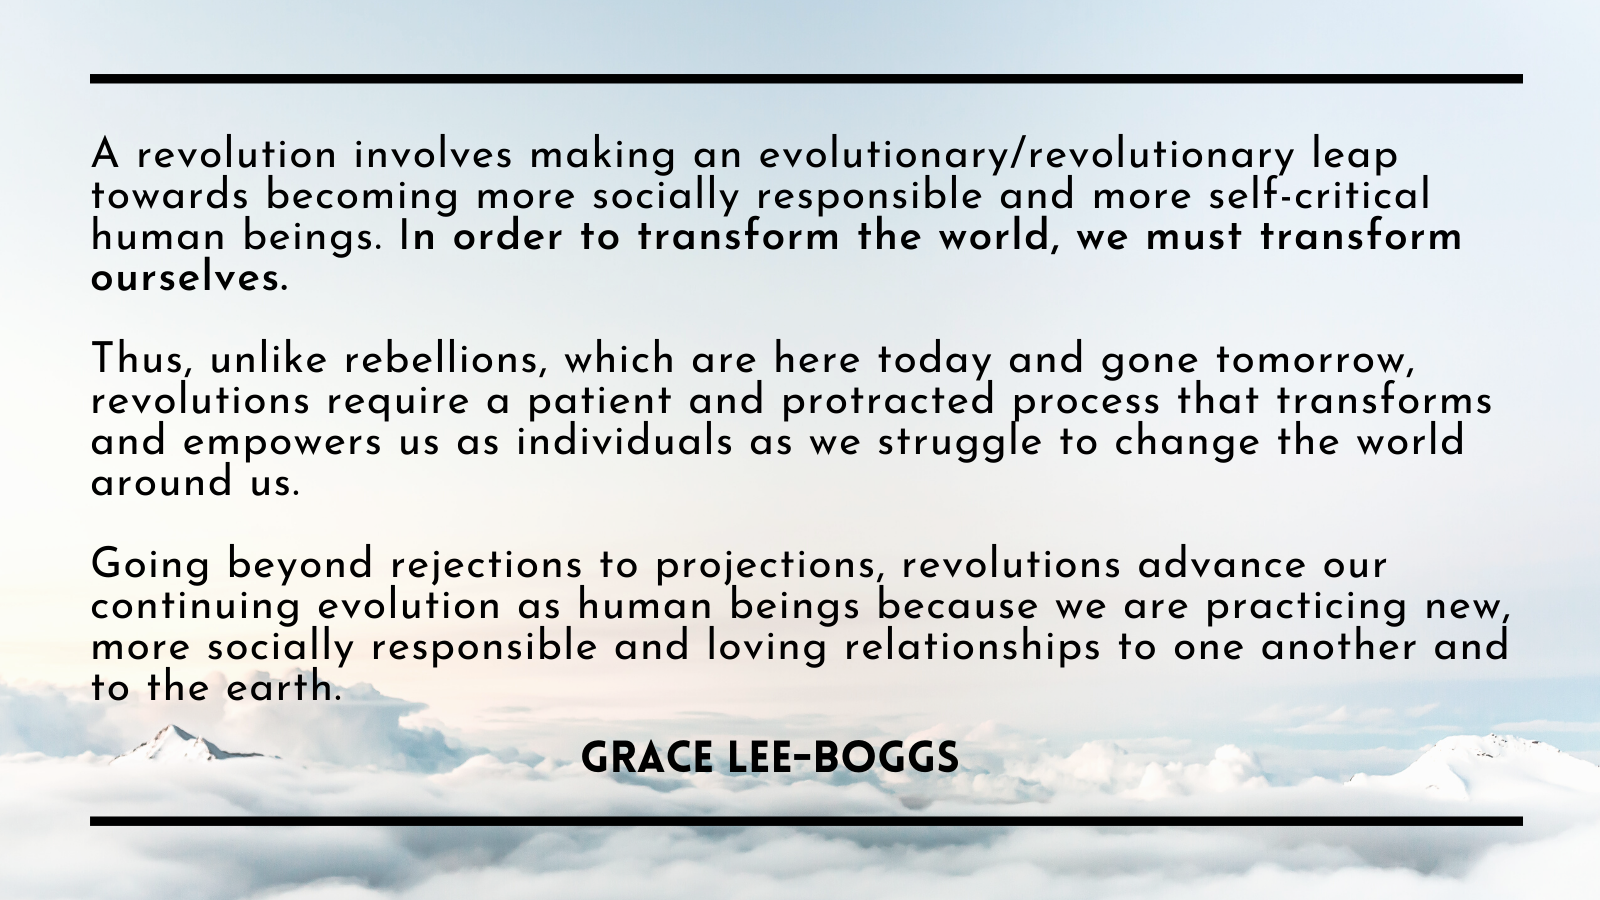 """""""A revolution involves making an evolutionary/revolutionary leap toward becoming more socially responsible and more self-critical human beings. In order to transform the world, we must transform ourselves. Thus, unlike rebellions, which are here today and gone tomorrow, revolutions require a patient and protracted process that transforms and empower us as individuals as we struggle to change the world around us. Going beyond rejections to projections, revolutions advance our continuing evolution as human beings because we are practicing new more socially responsible and loving relationship to one another and to the earth."""" - Grace Lee Boggs"""